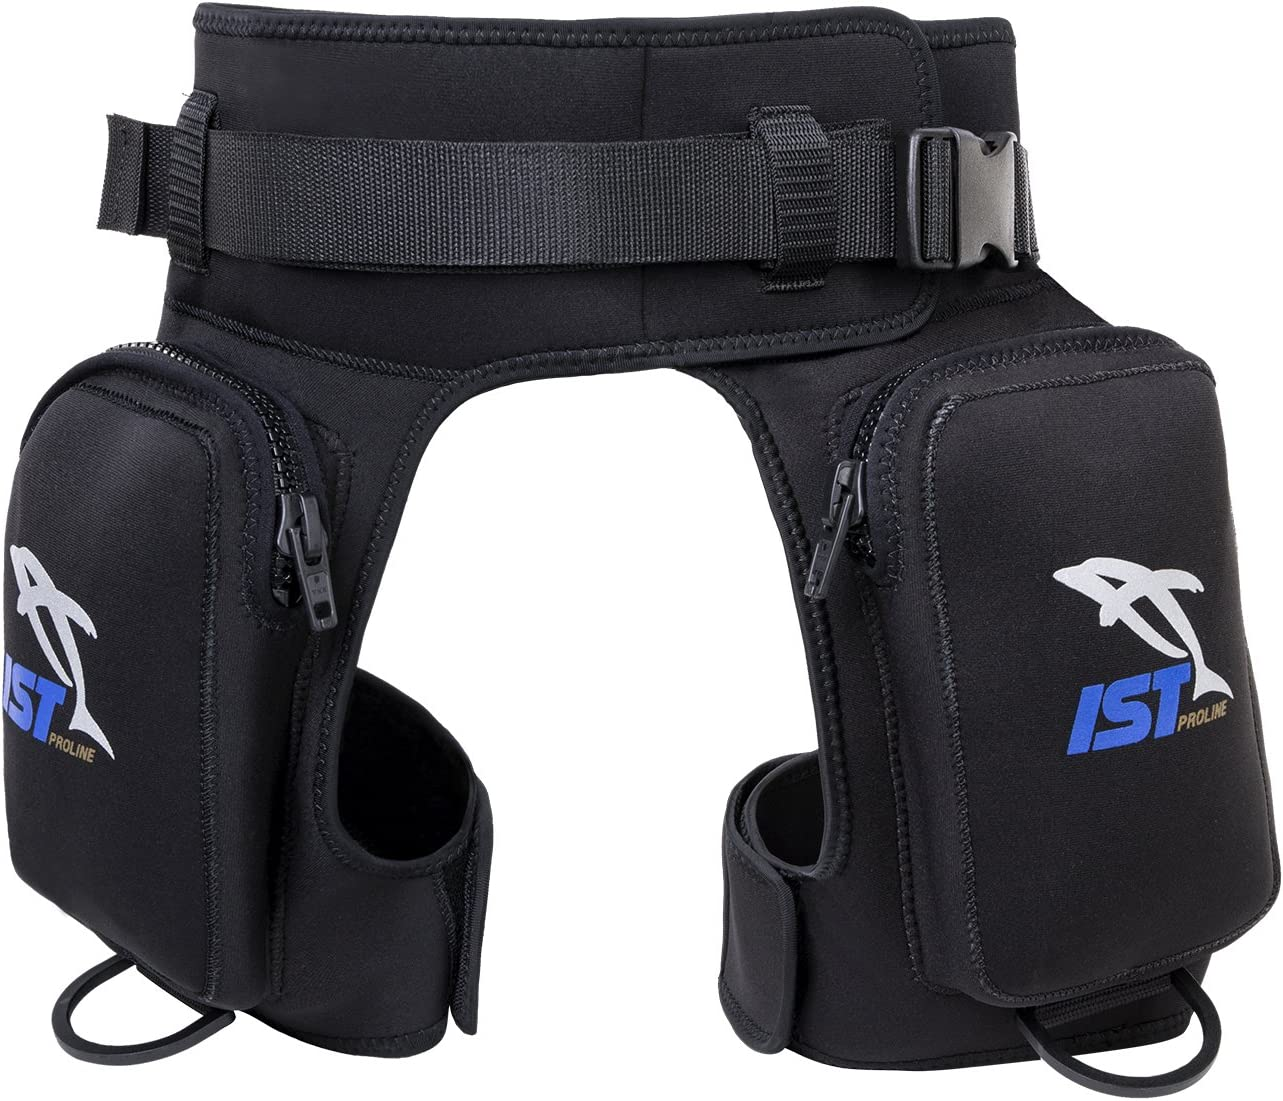 IST Dive Pocket Holster Belt for Ranking Animer and price revision TOP3 Diving Cargo Storage Scuba Thi